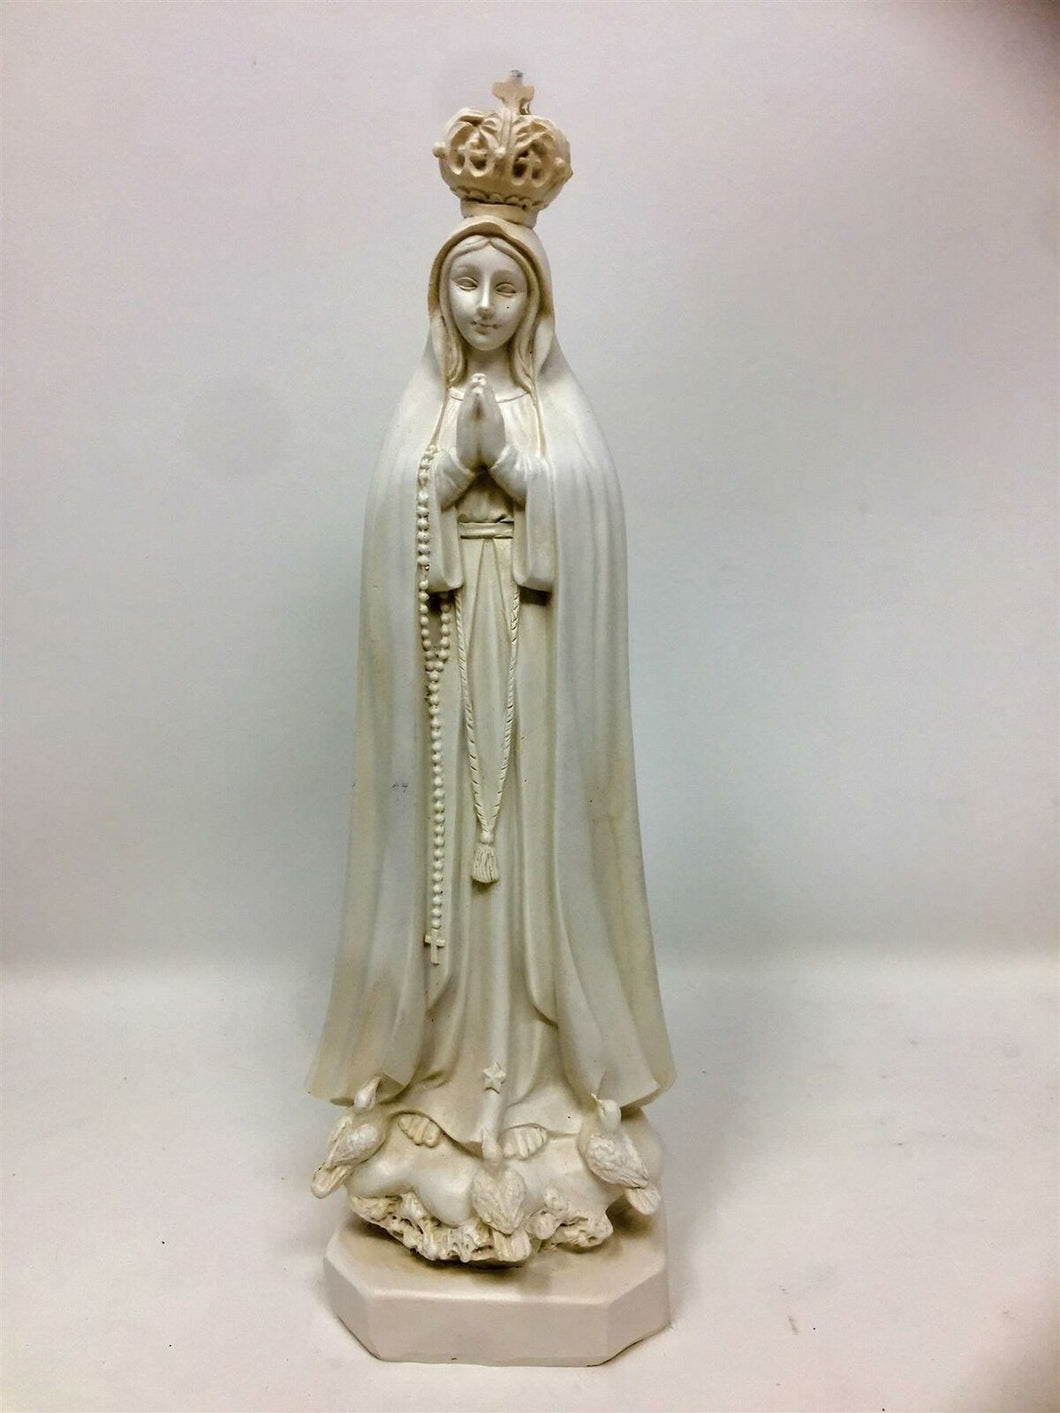 Blessed Virgin Mary Our Lady of Fatima White Statue Ornament Figurine